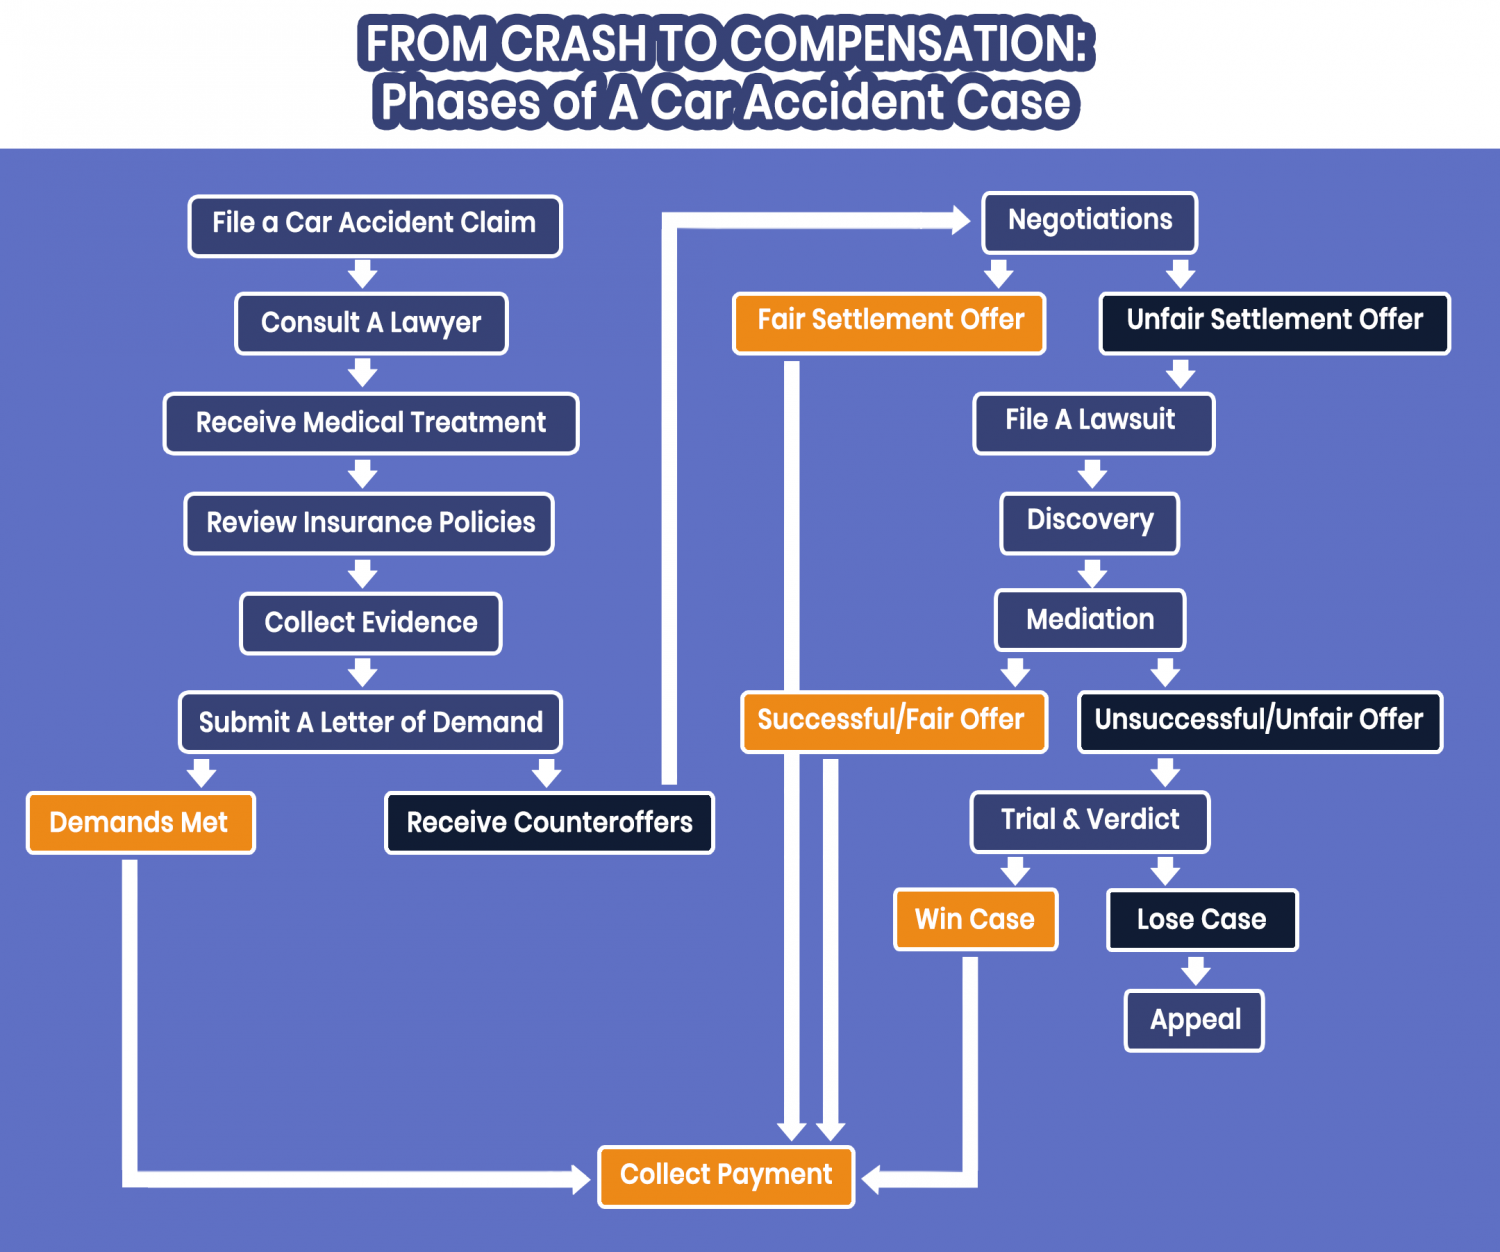 Phases of A Car Accident Case Infographic